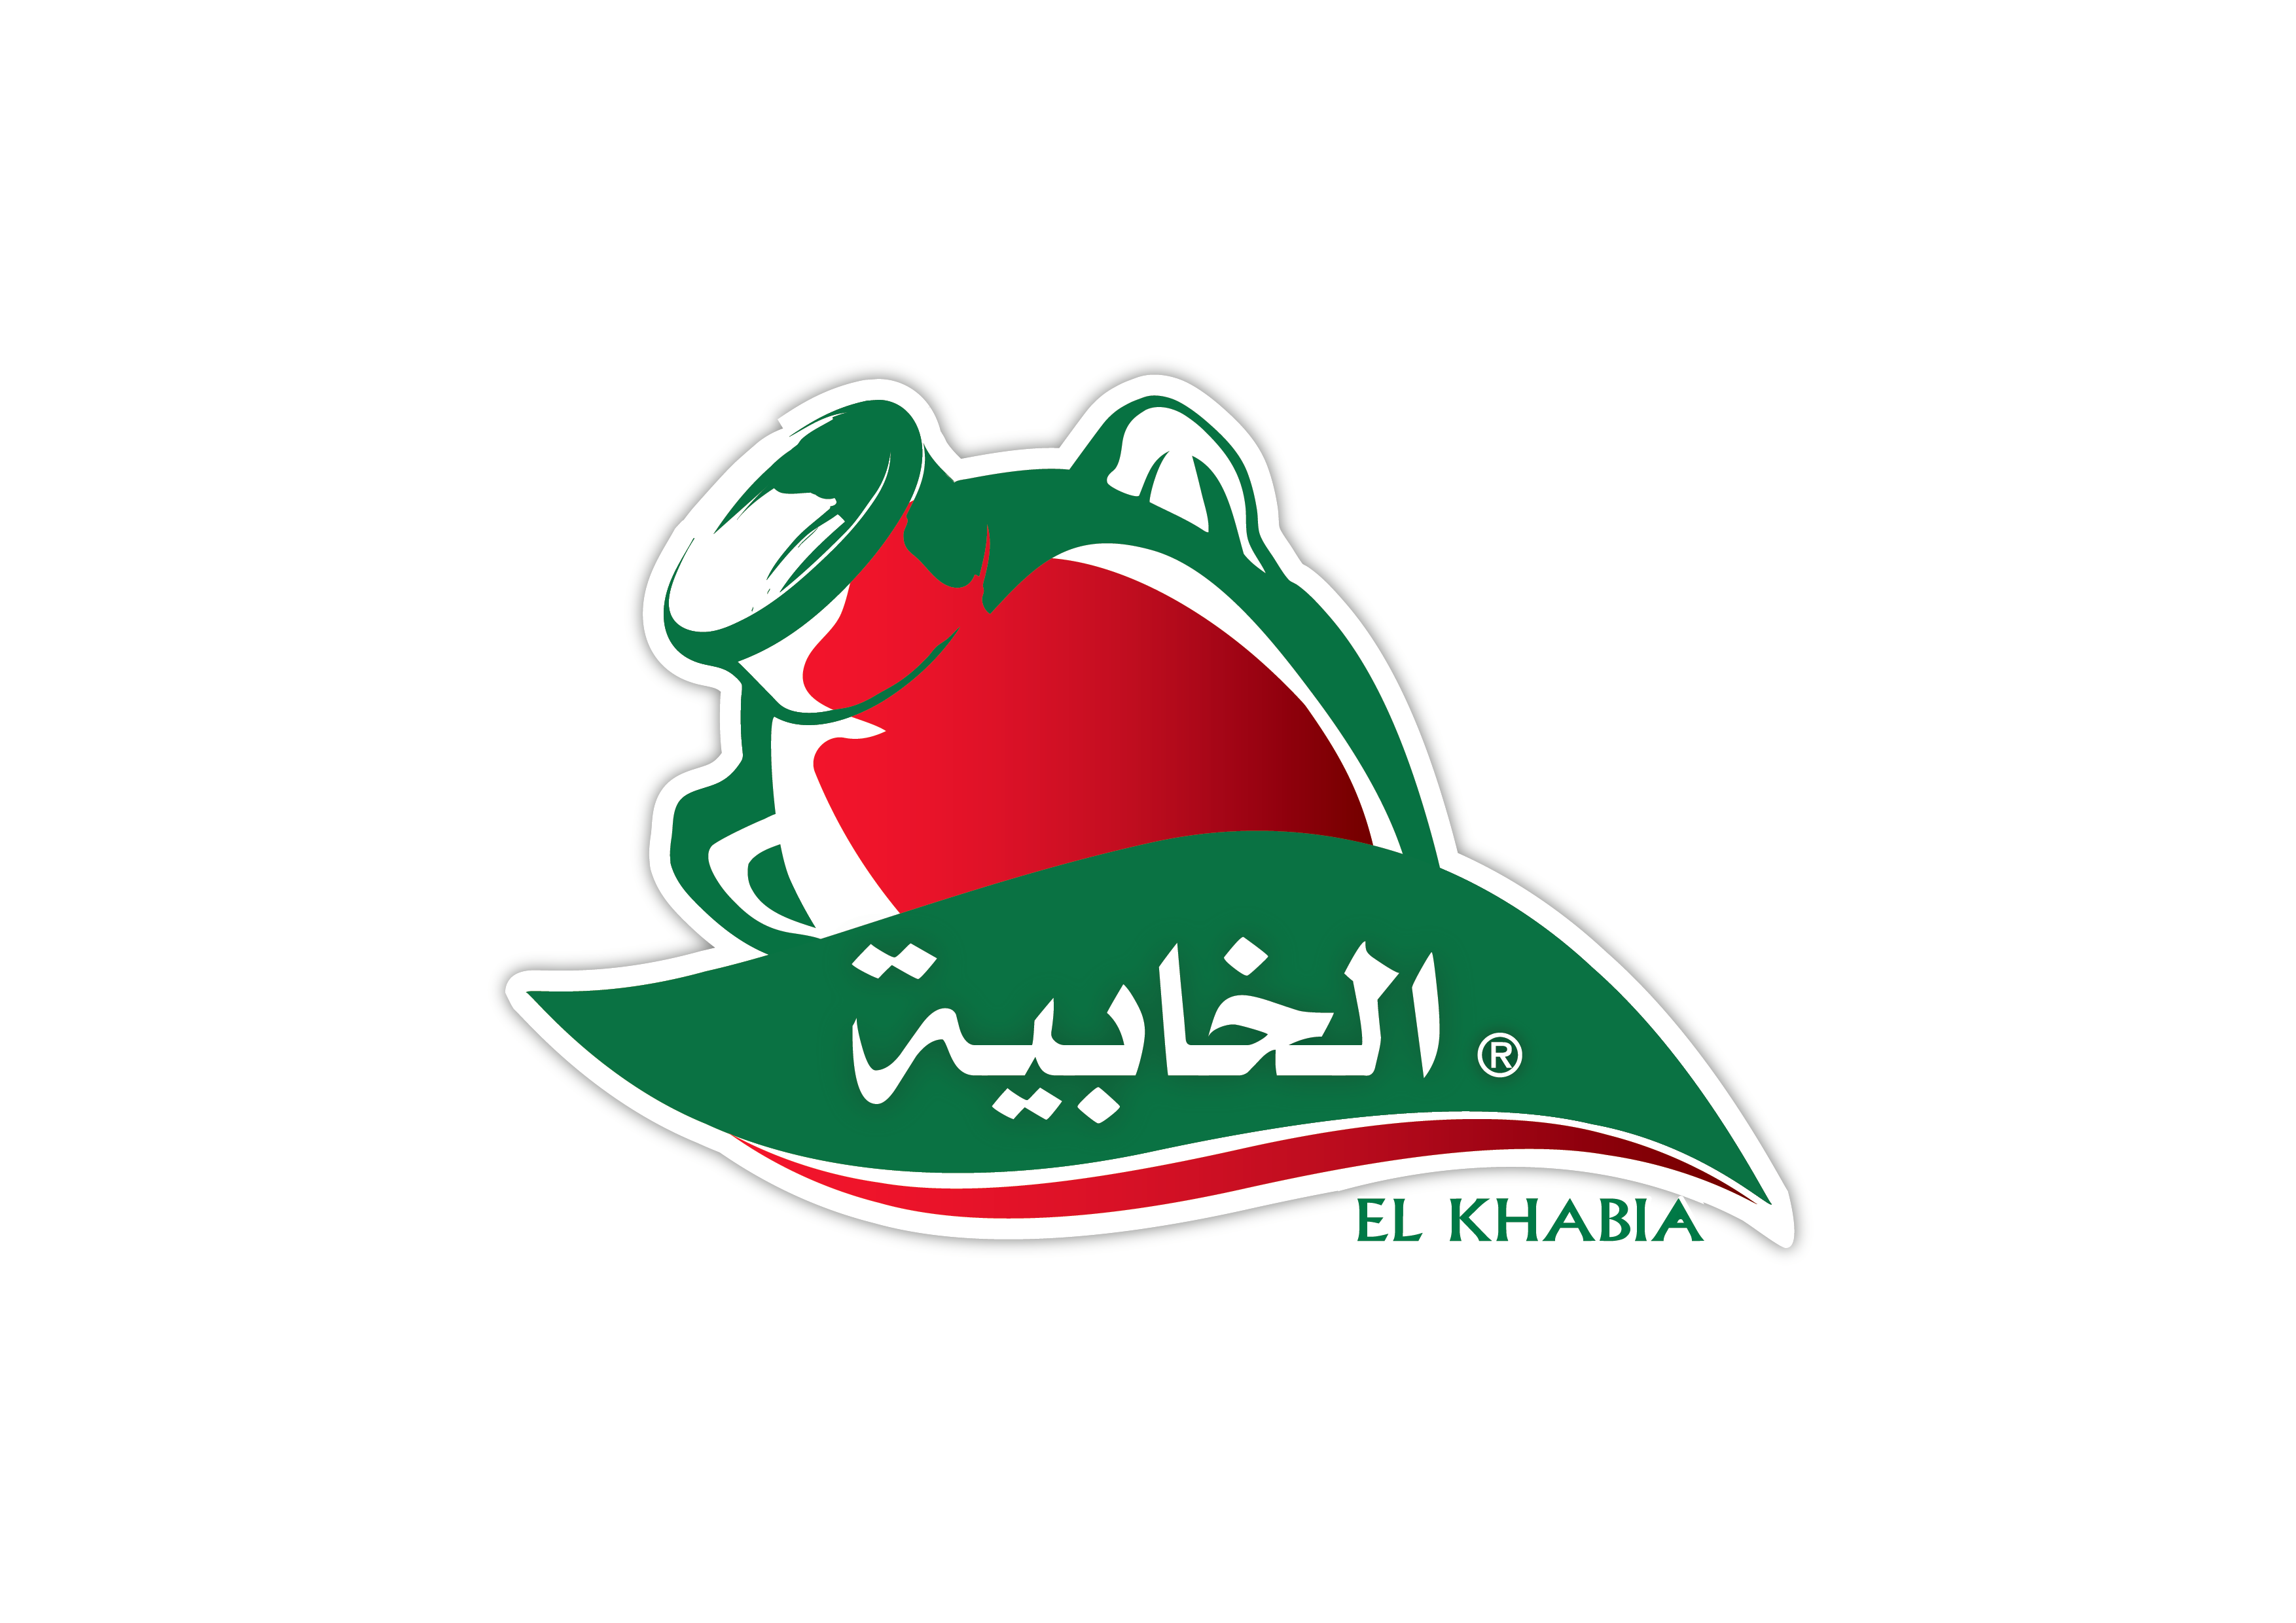 LEADER FOOD PROCESS ELKHABIA